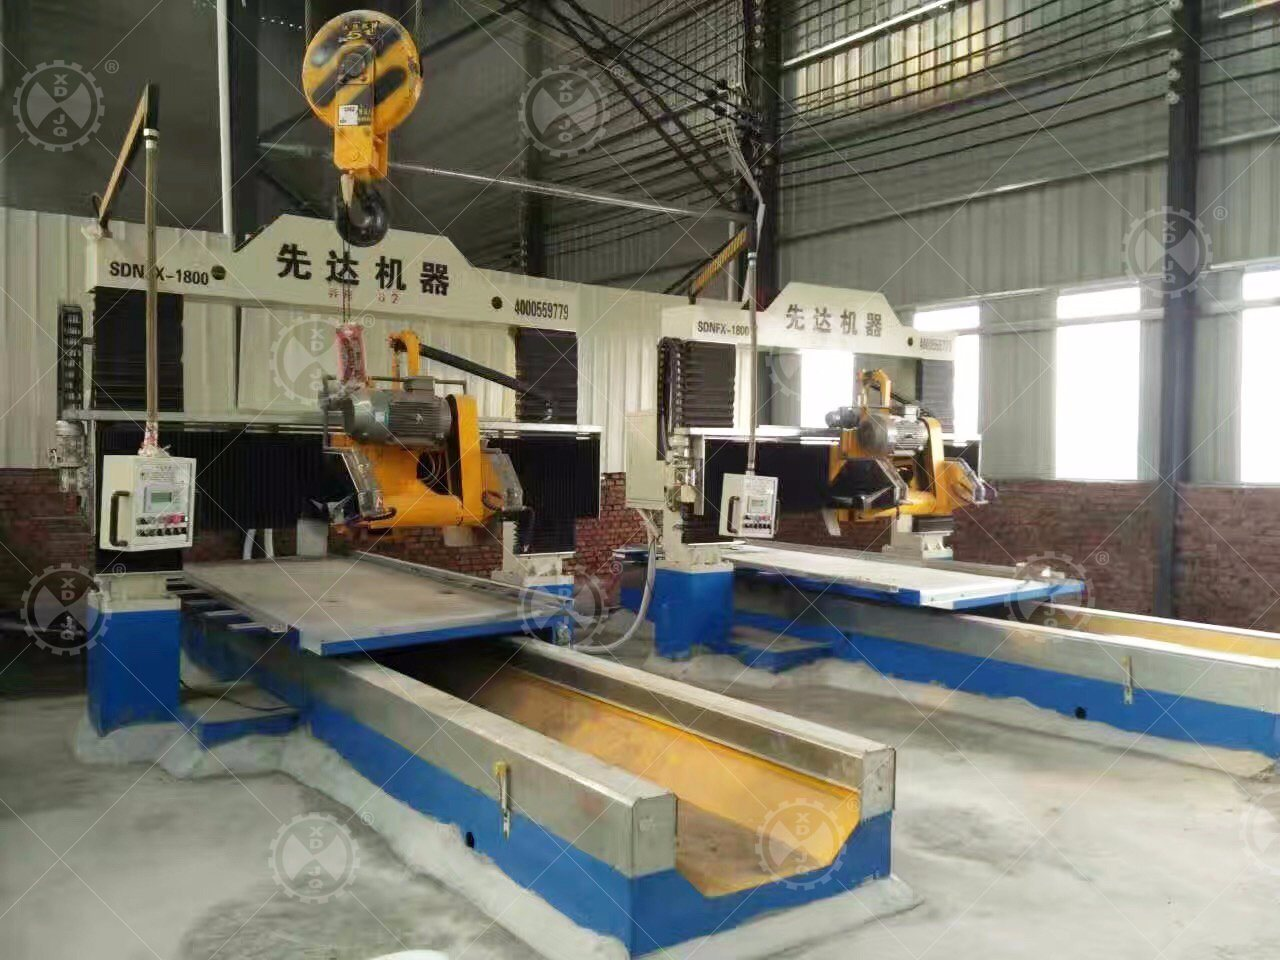 Scnfx-1800 CNC Automatic Gantry Stone Profiling Cutting Machine